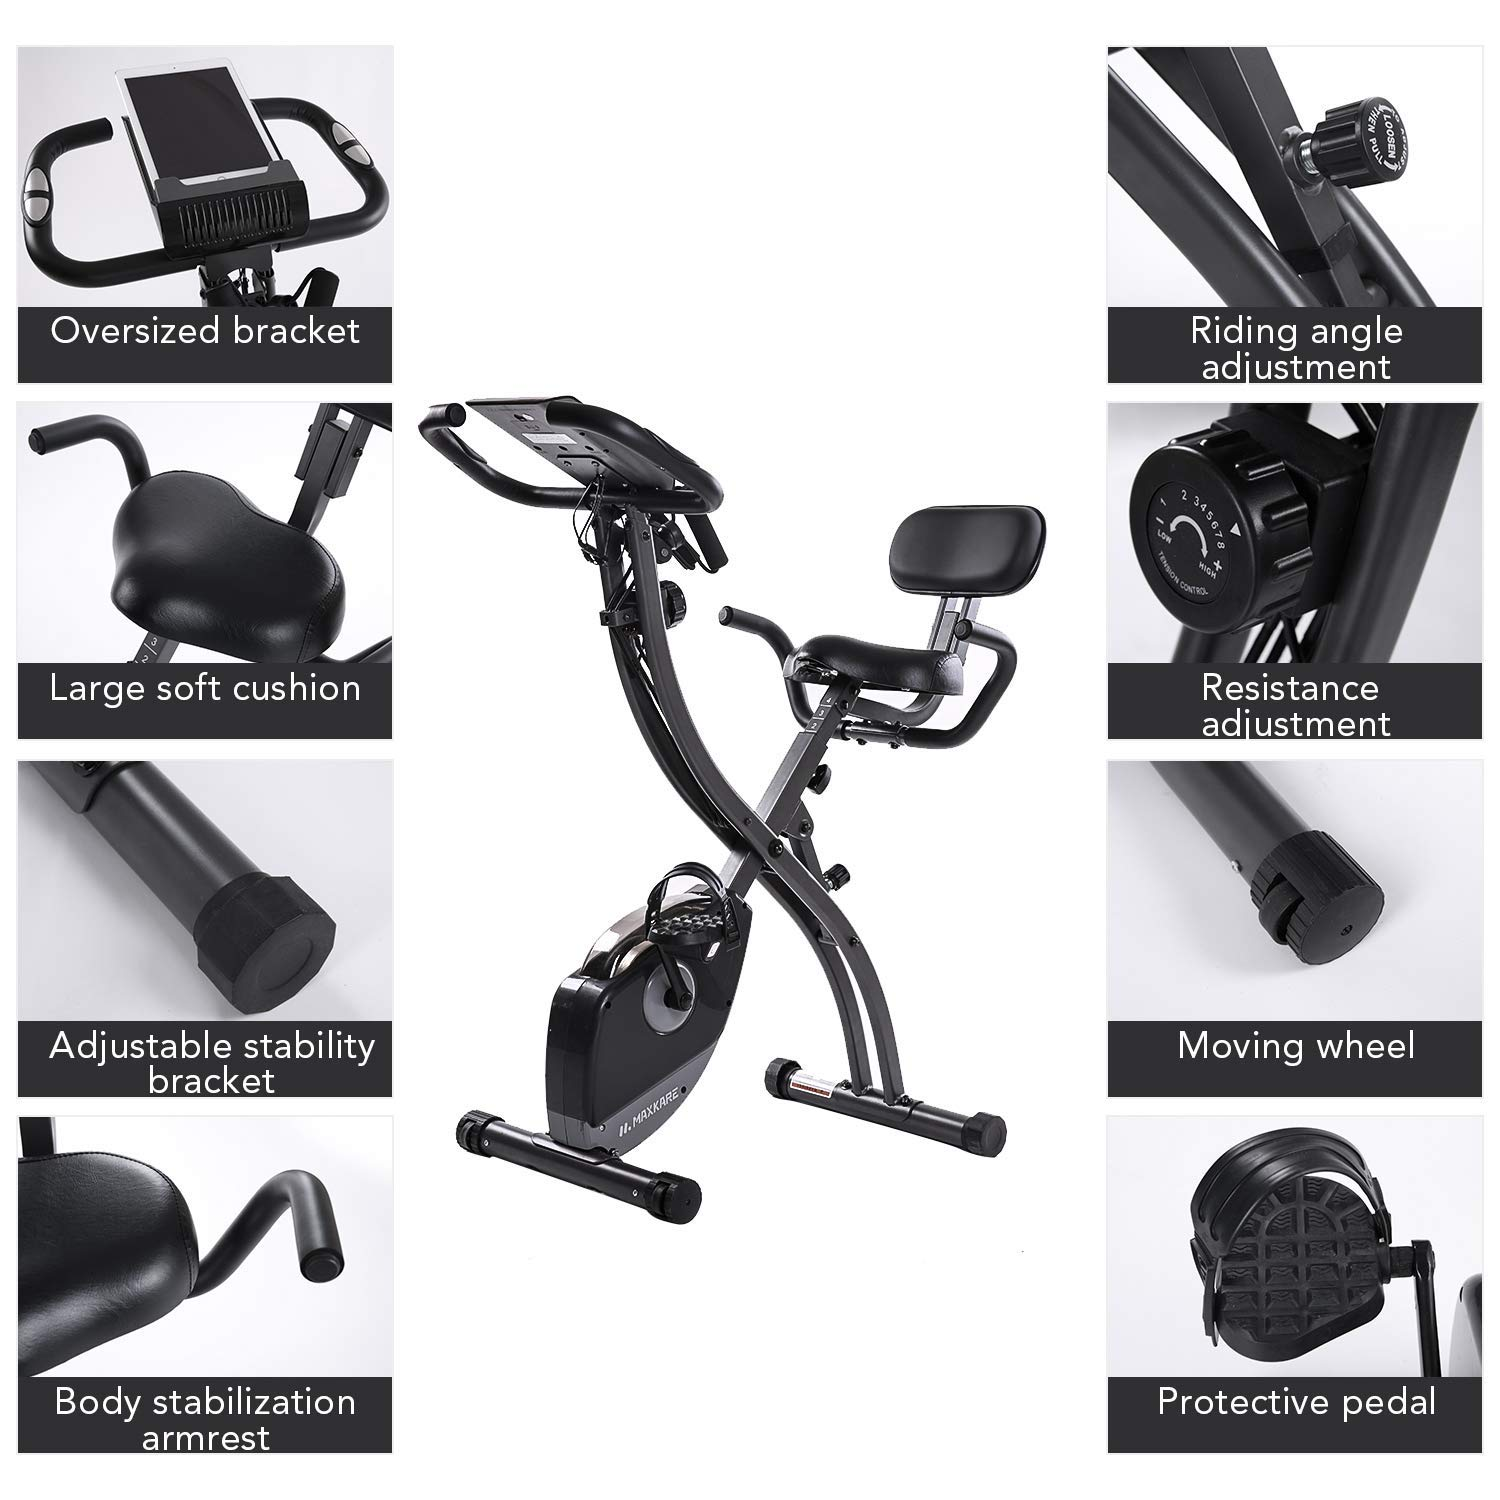 MaxKare 2 in1 Folding Magnetic Upright Exercise Bike w/Pulse, Indoor Stationary Bike with Adjustable Arm Resistance Bands and LCD Monitor by MaxKare (Image #5)